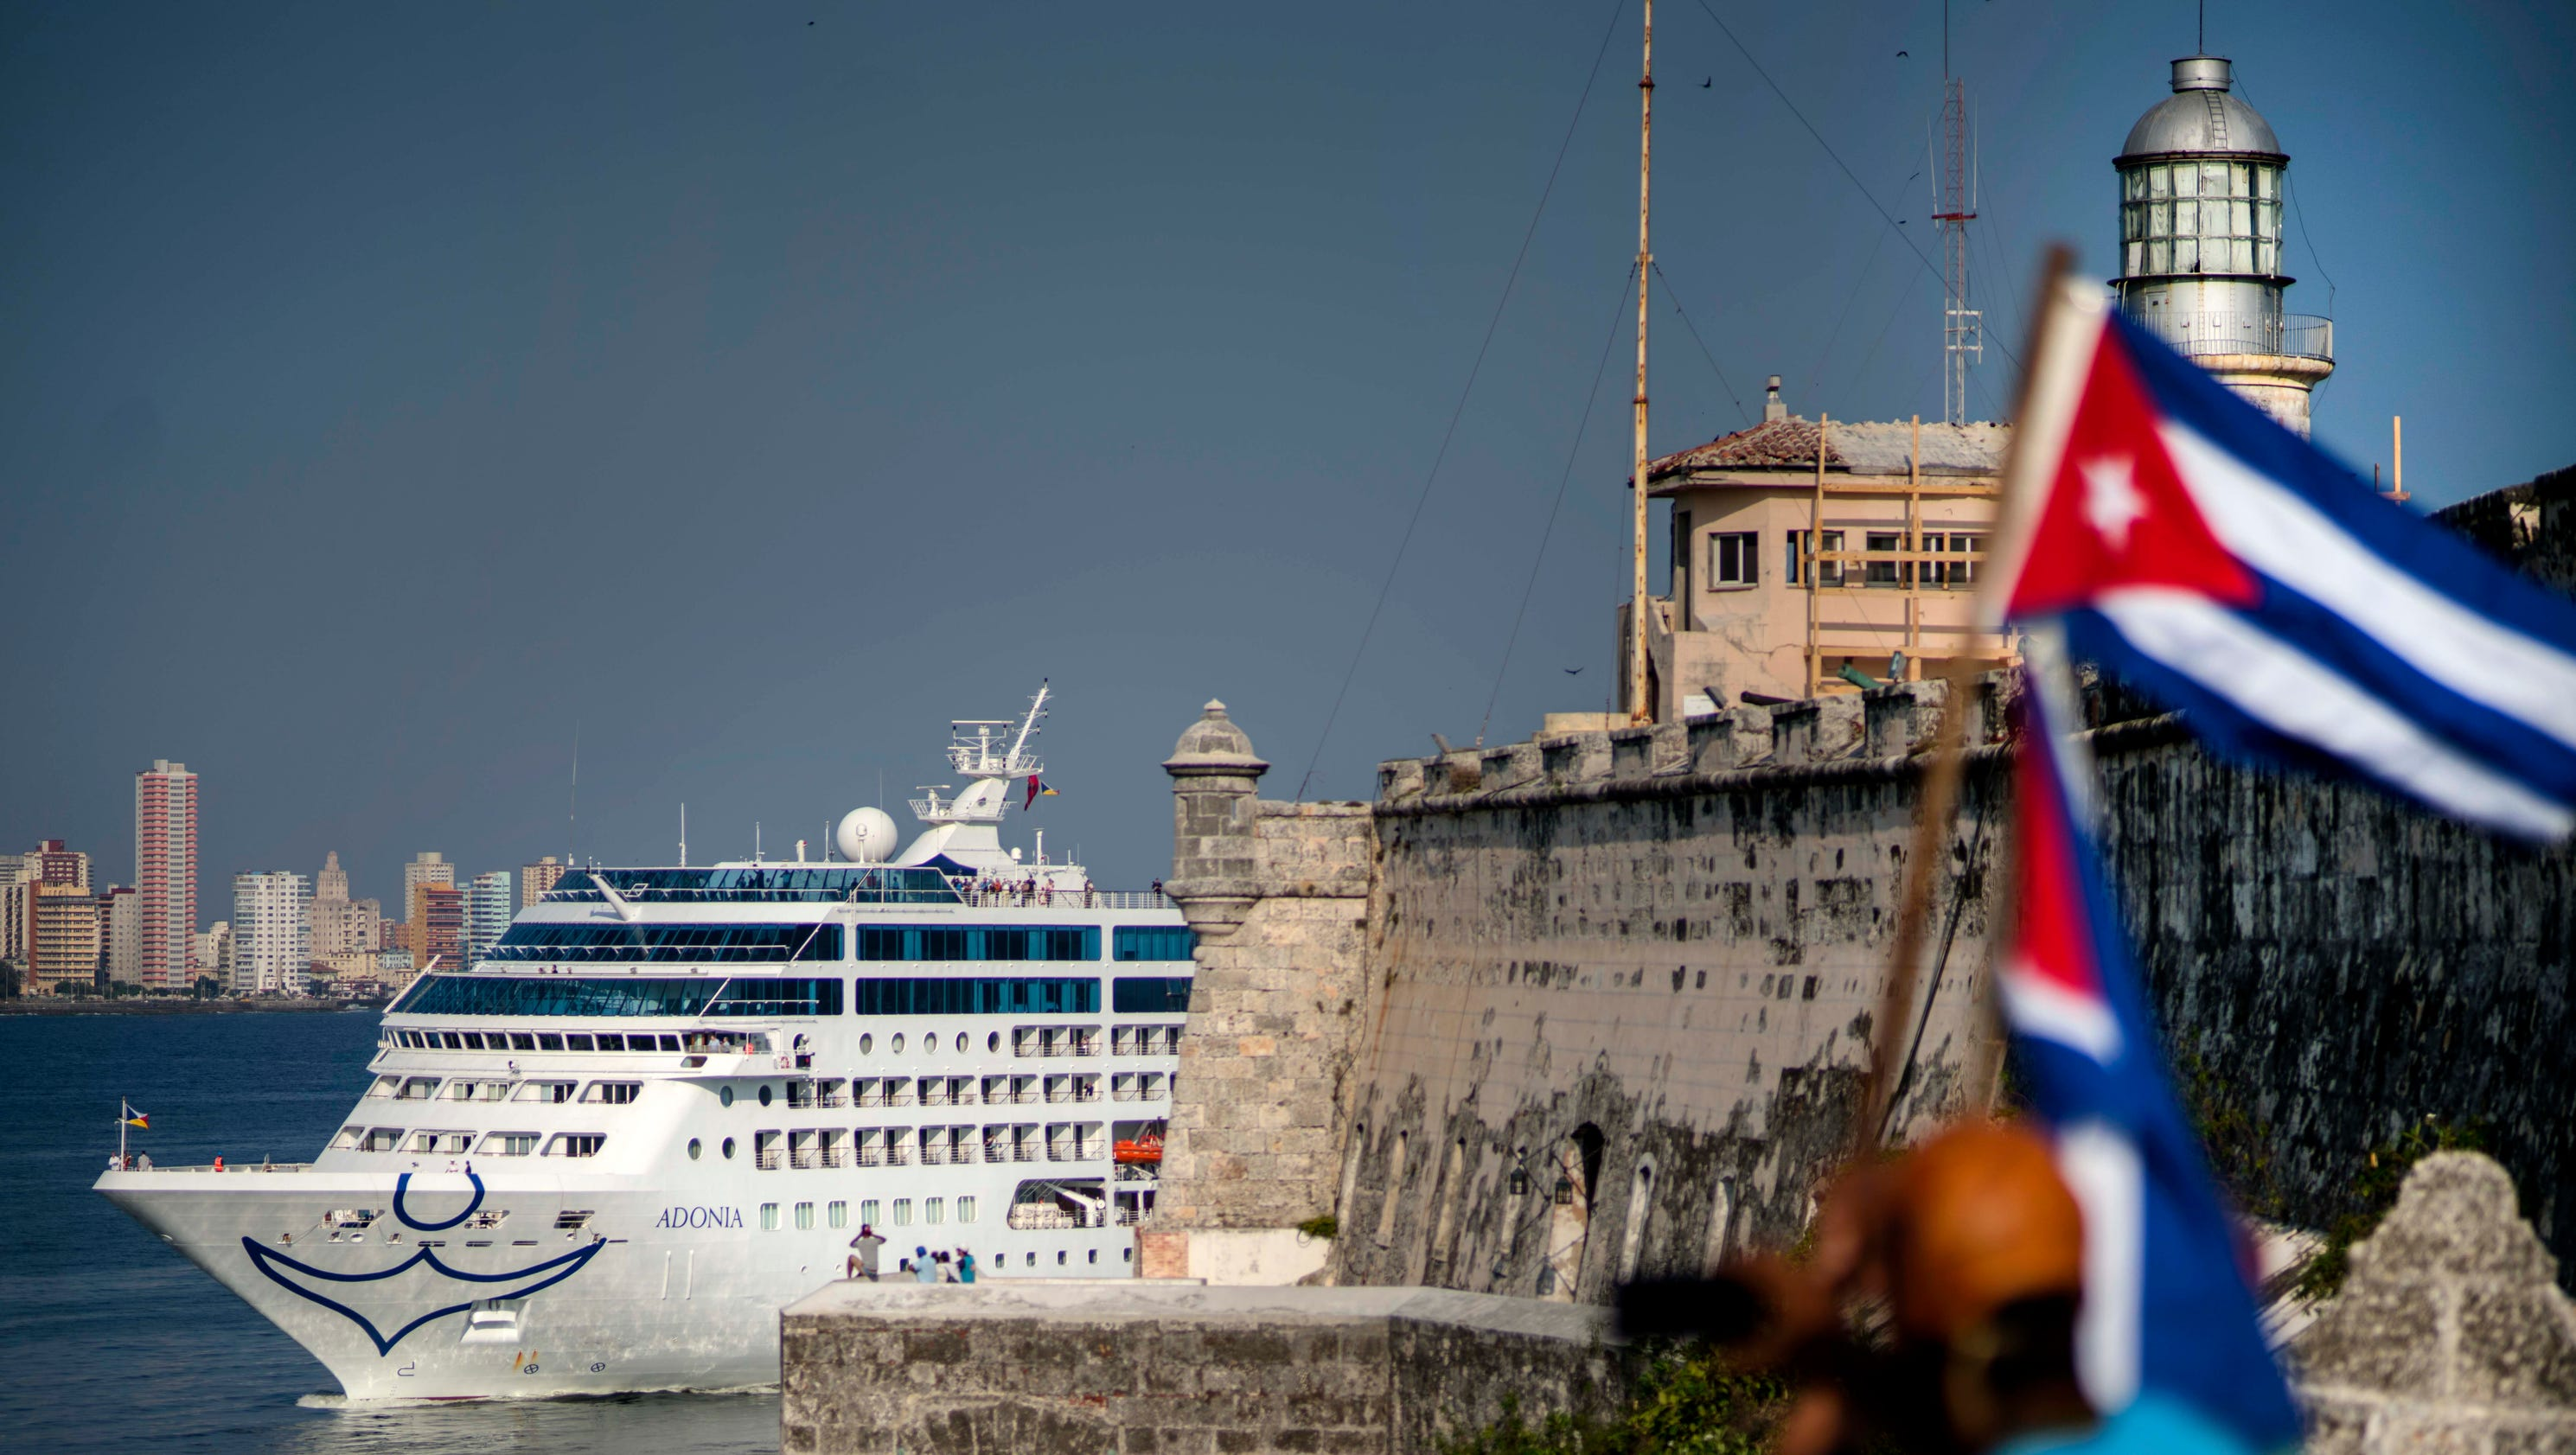 U S Visits To Cuba Down Despite Travelers Can Still Get To Island